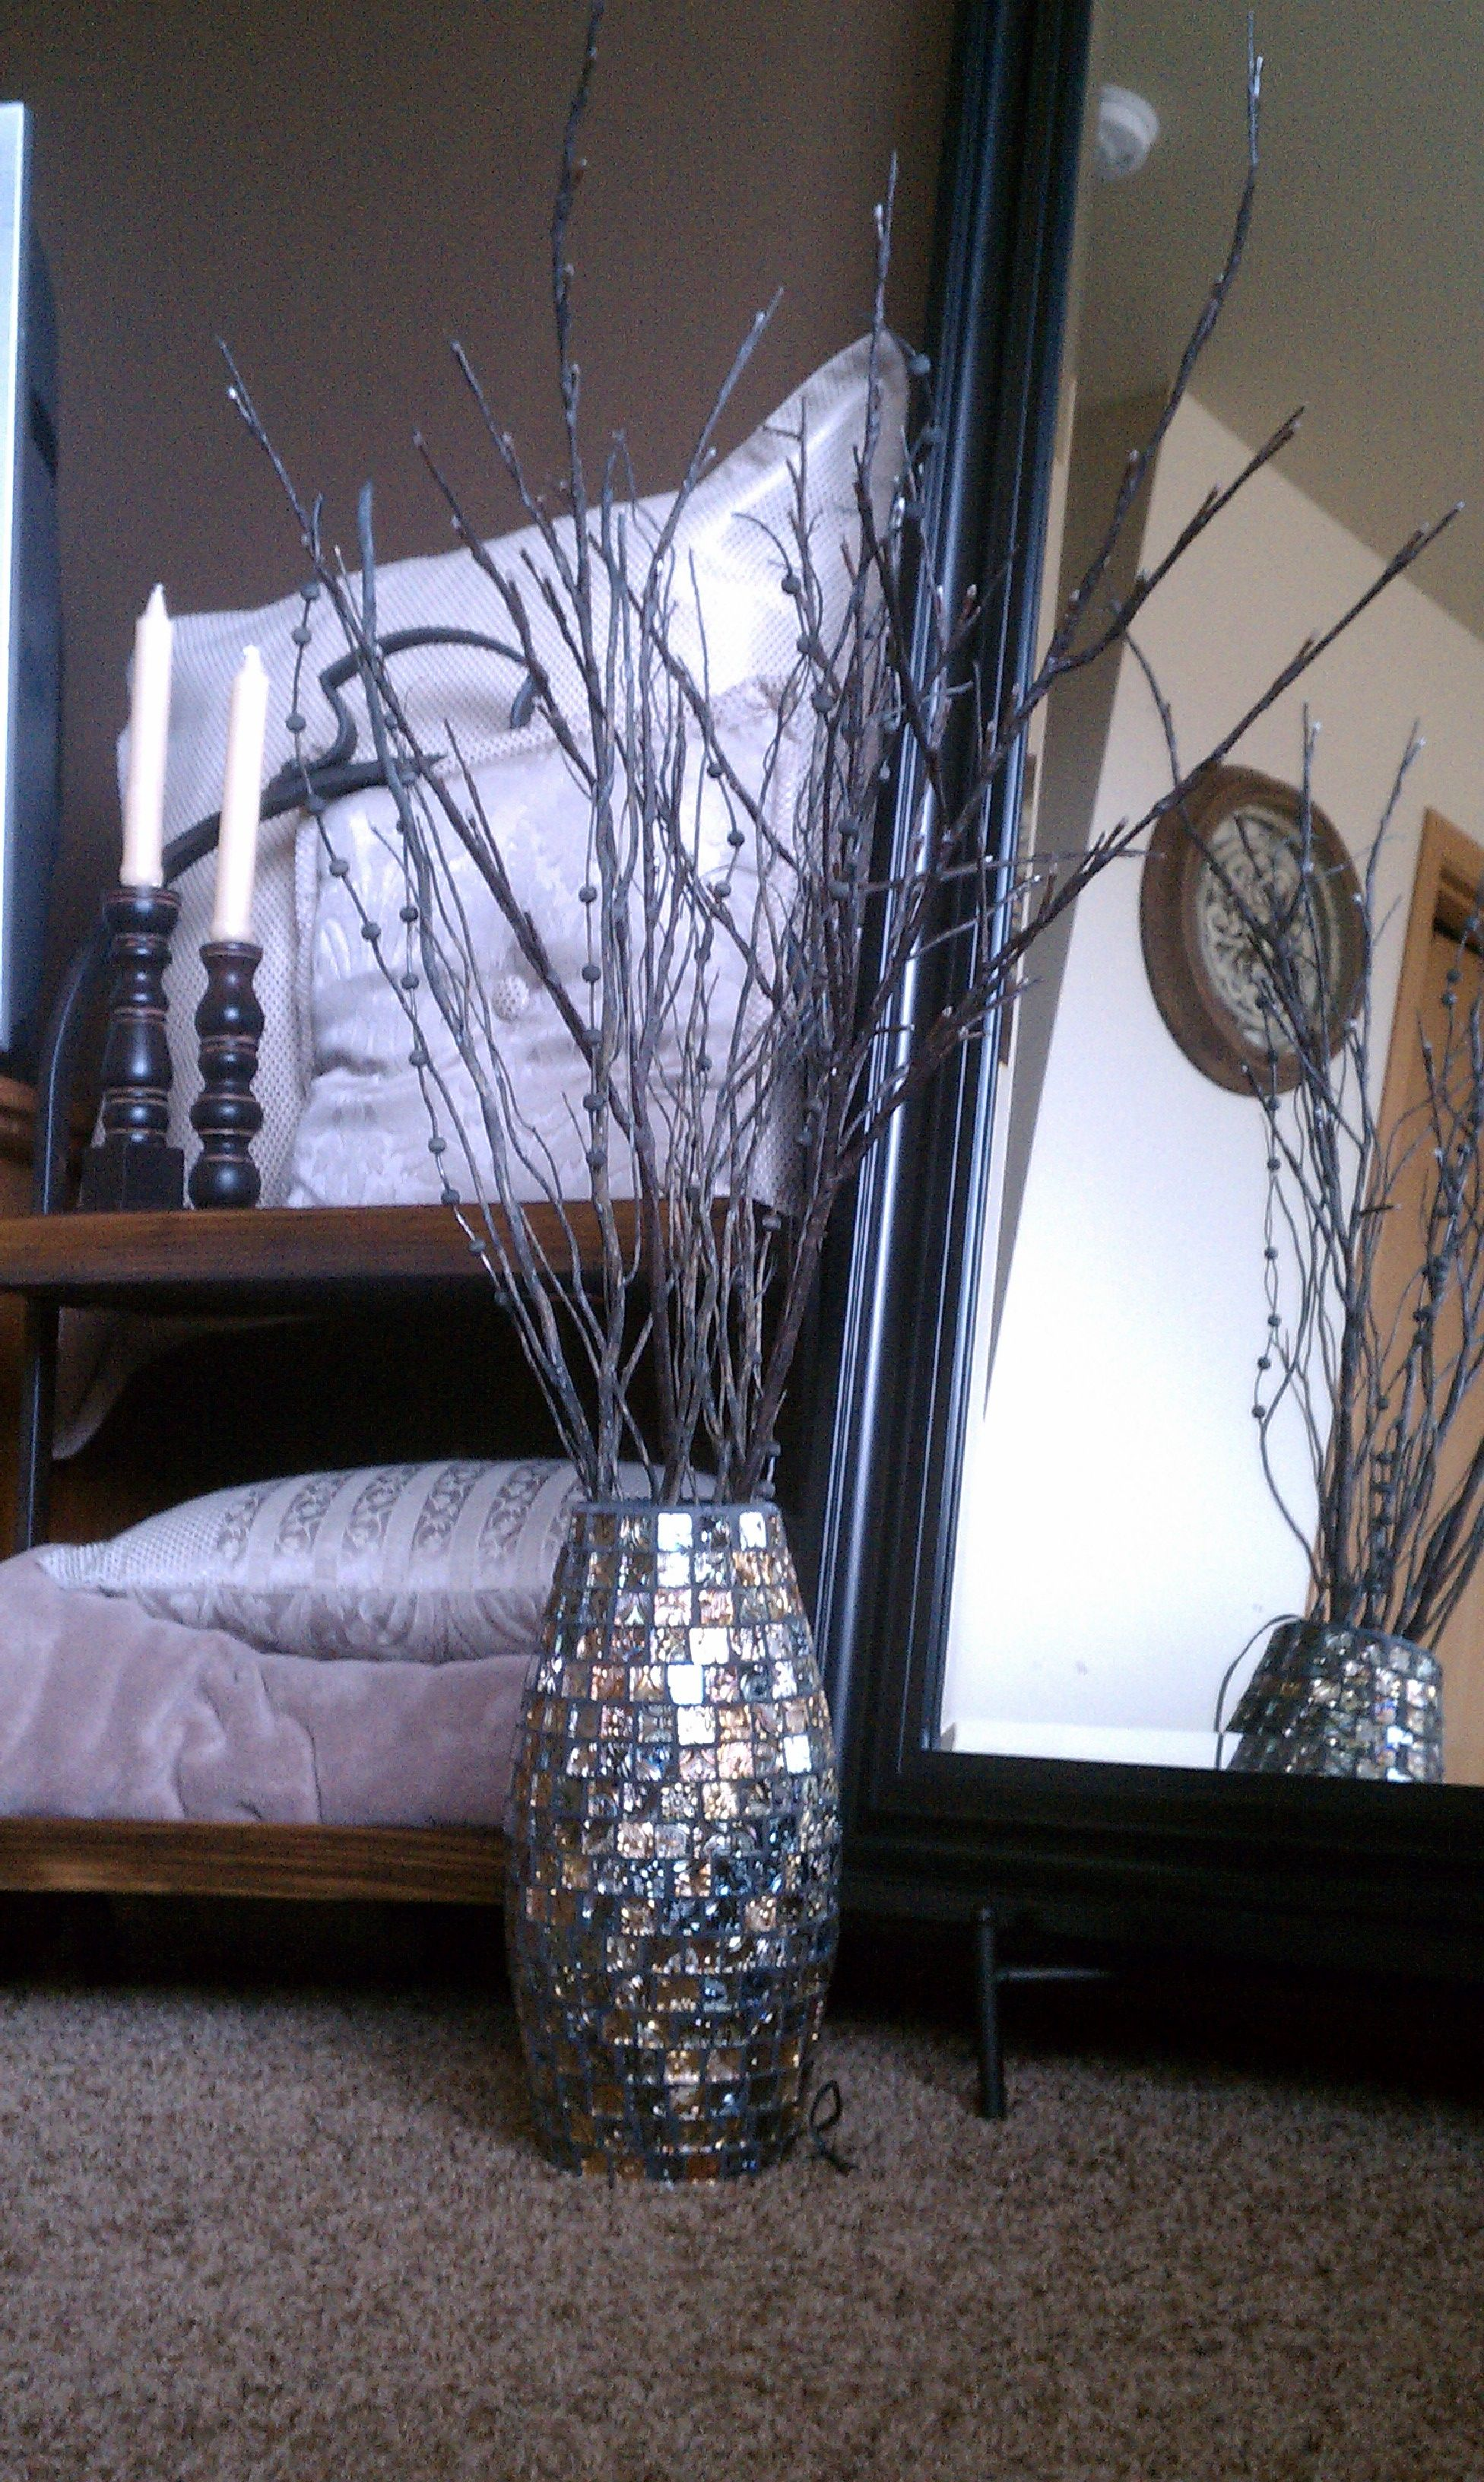 Decorative Vase With Lighted Branches And Twigs Decor